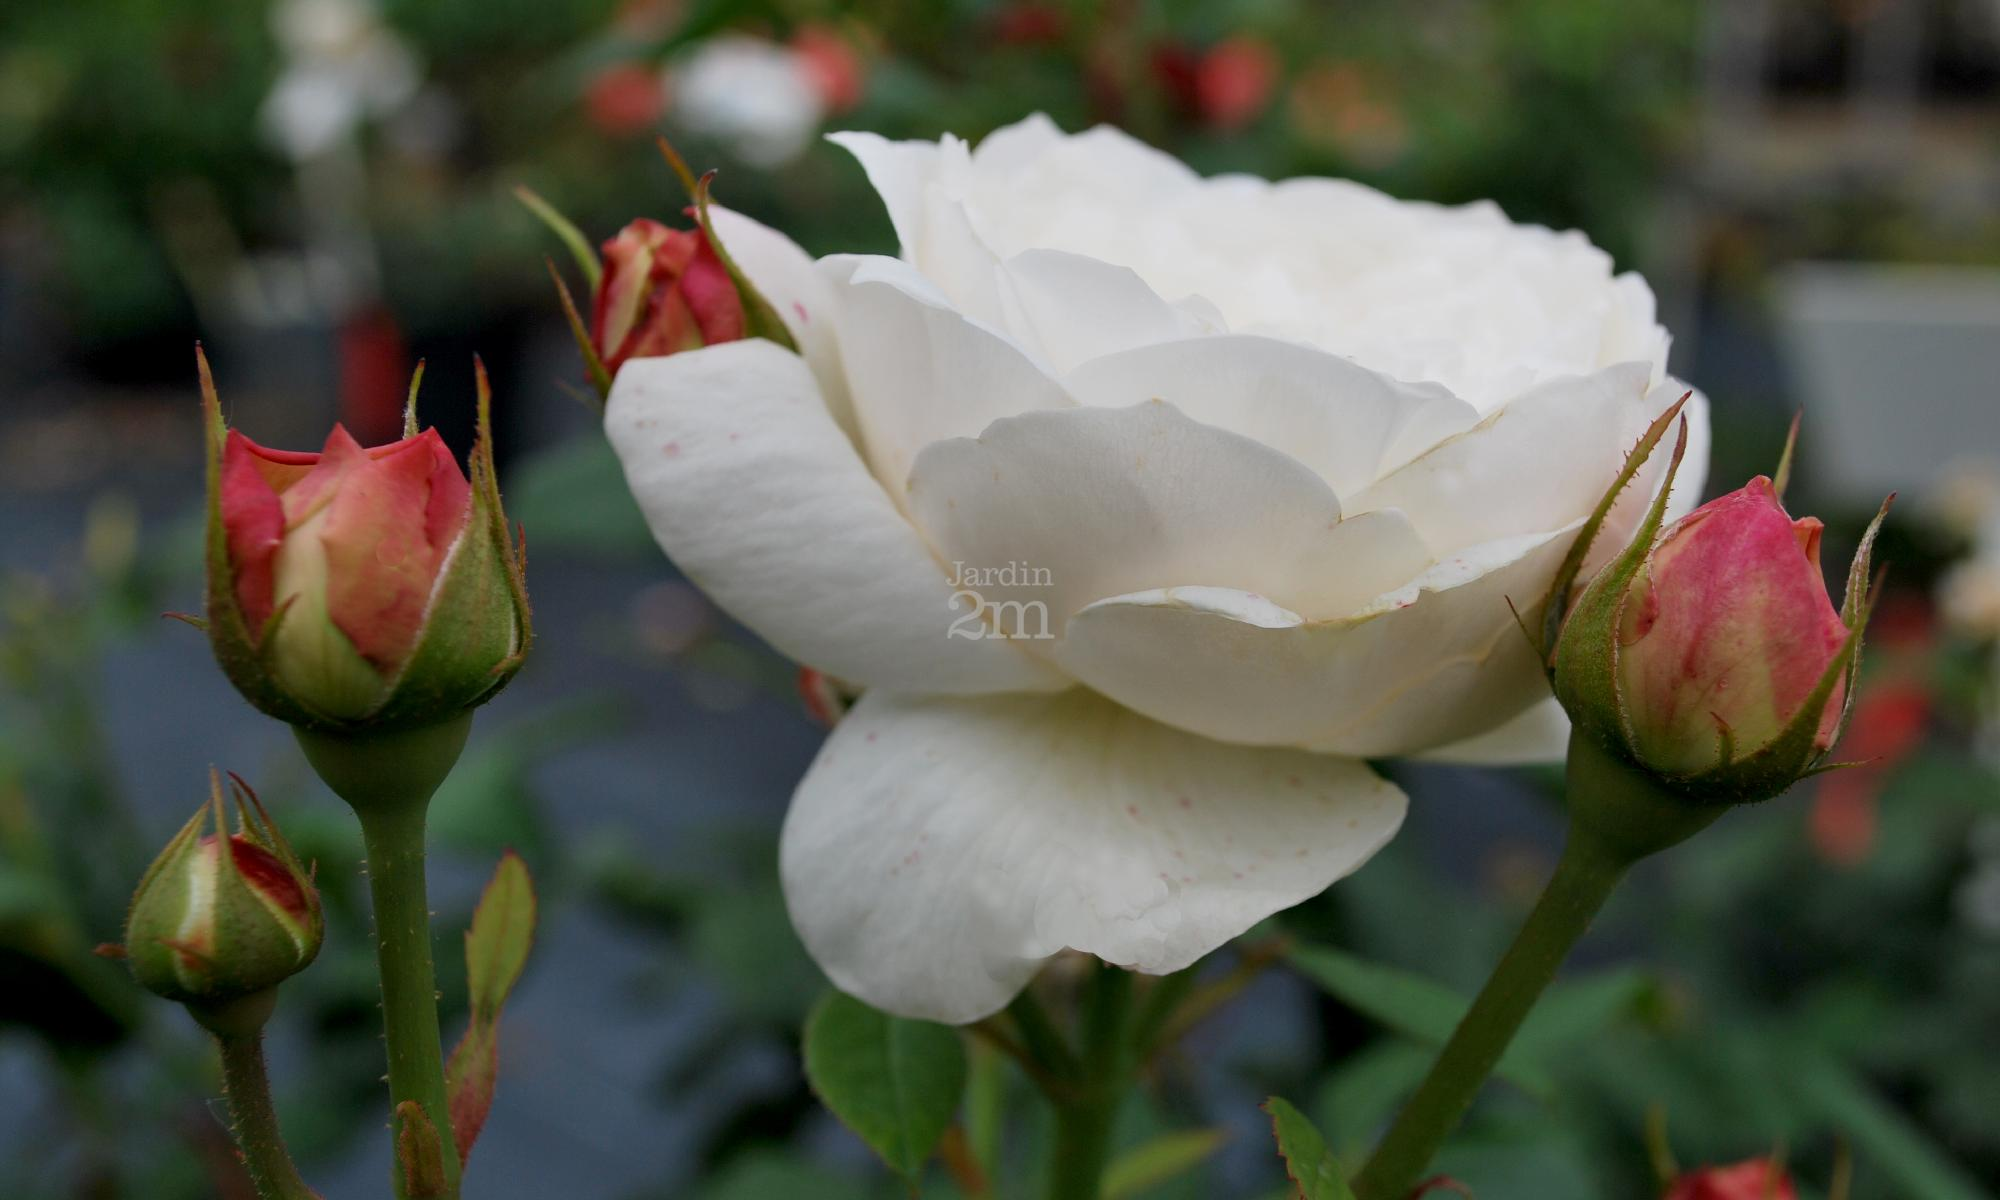 Rosa anglais fair bianca david austin rosier for Jardin anglais vegetaux